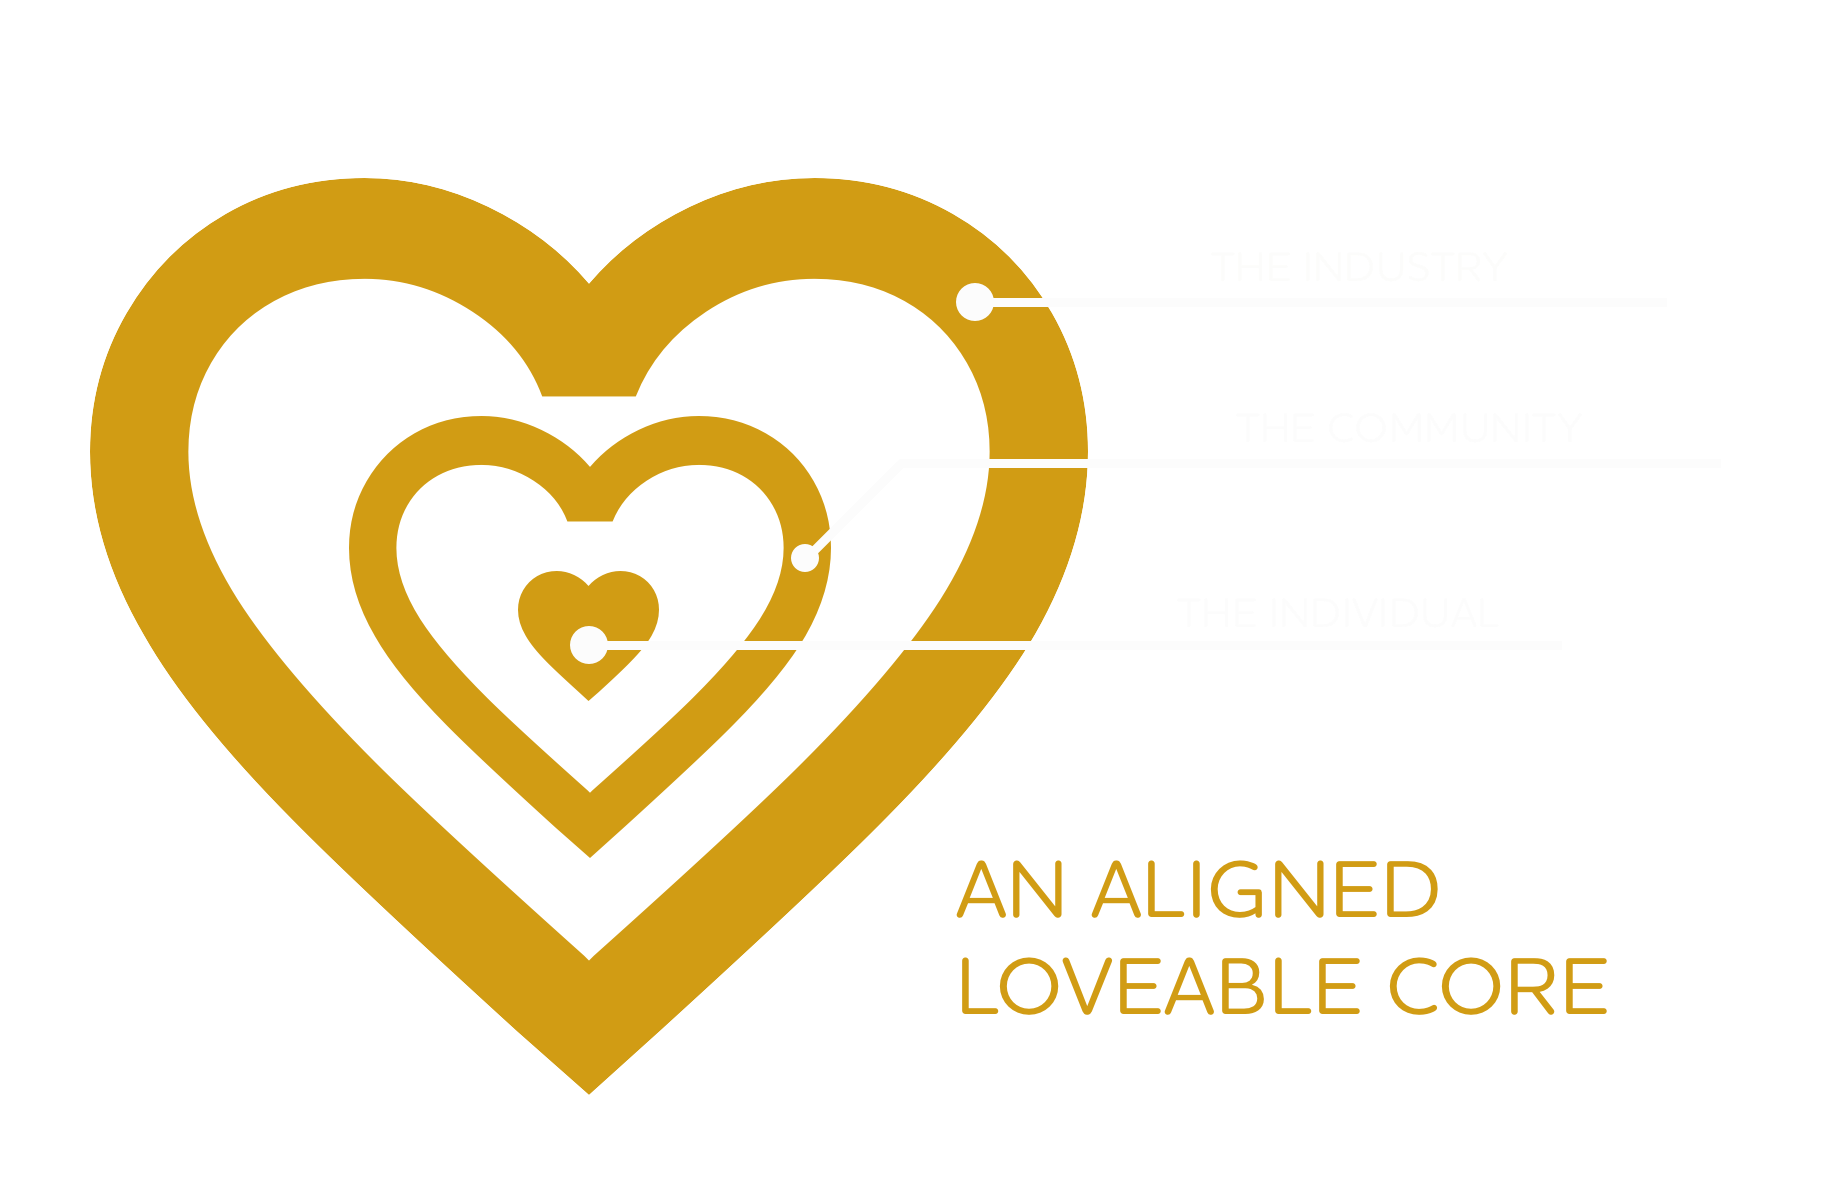 Loveable Core Diagram